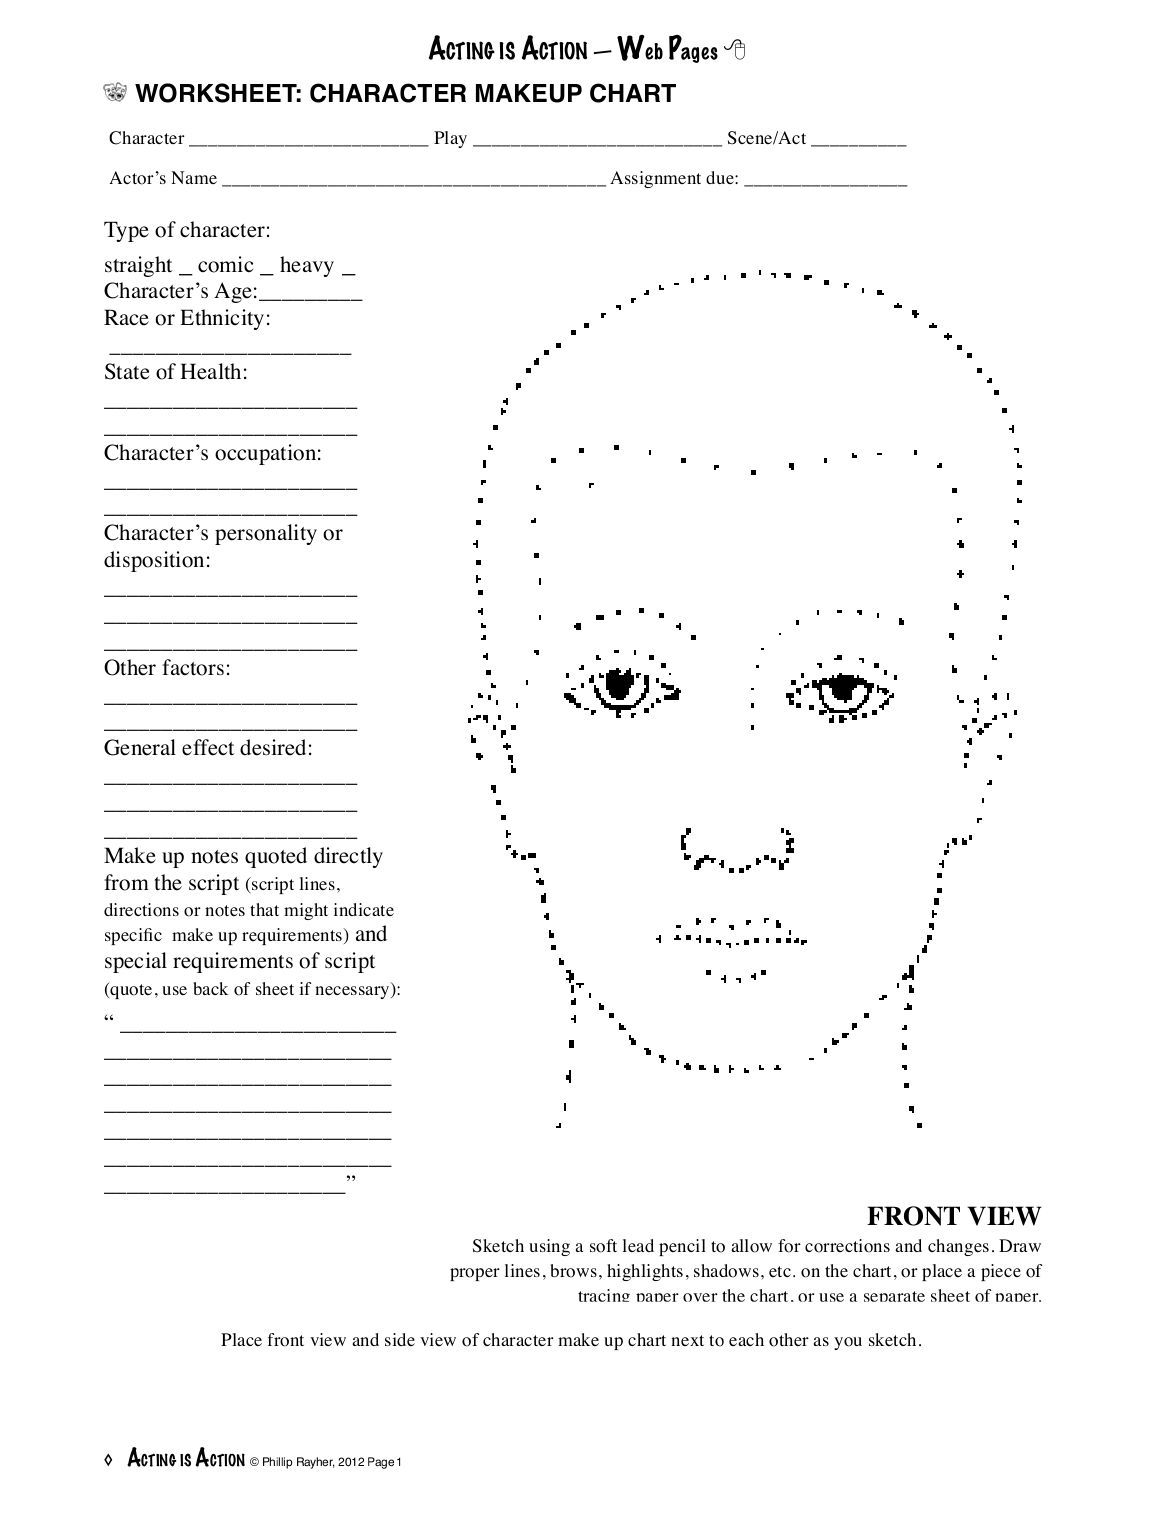 worksheet character makeup chart the SOTA Theatre Department